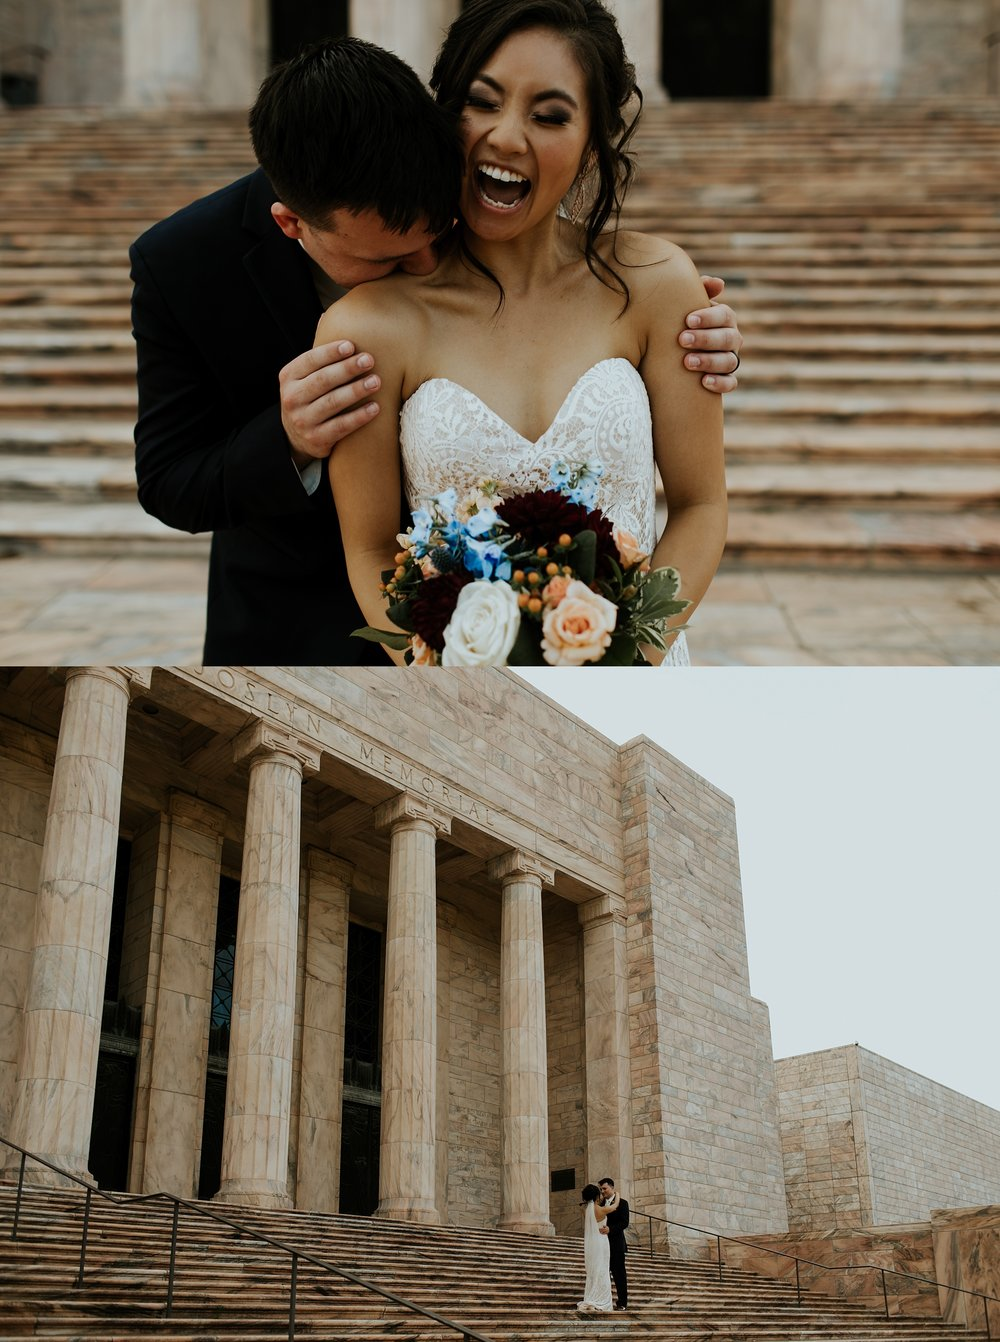 Whimsical Joslyn Art Museum Wedding by Trin Jensen - Omaha Nebraska Wedding Photographer_0023.jpg